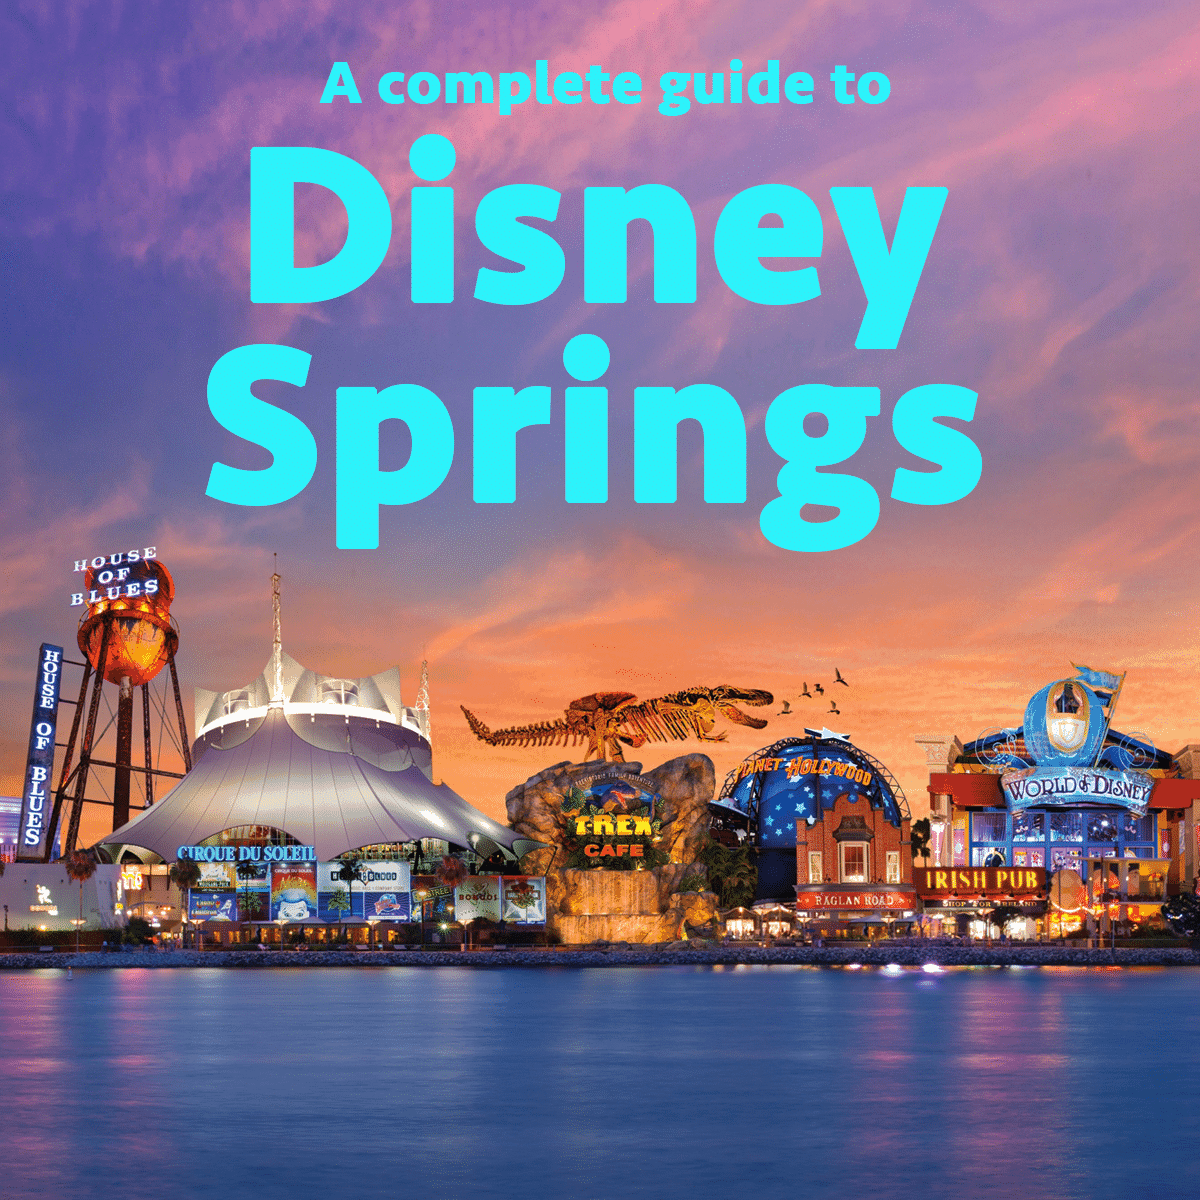 Complete Guide to Disney Springs at Disney World | WDW Prep ... on kennedy space center orlando map, disney quest orlando map, universal studios orlando map, epcot map, shopping orlando map, florida citrus bowl parking map, wilderness lodge orlando map, cocoa beach orlando map, millenia mall orlando map, animal kingdom map, fort wilderness orlando map, house of blues orlando map, west side of the world map, arabian nights orlando map, islands of adventure orlando map, original magic kingdom map, disney studios orlando map, hollywood orlando map, boardwalk orlando map,